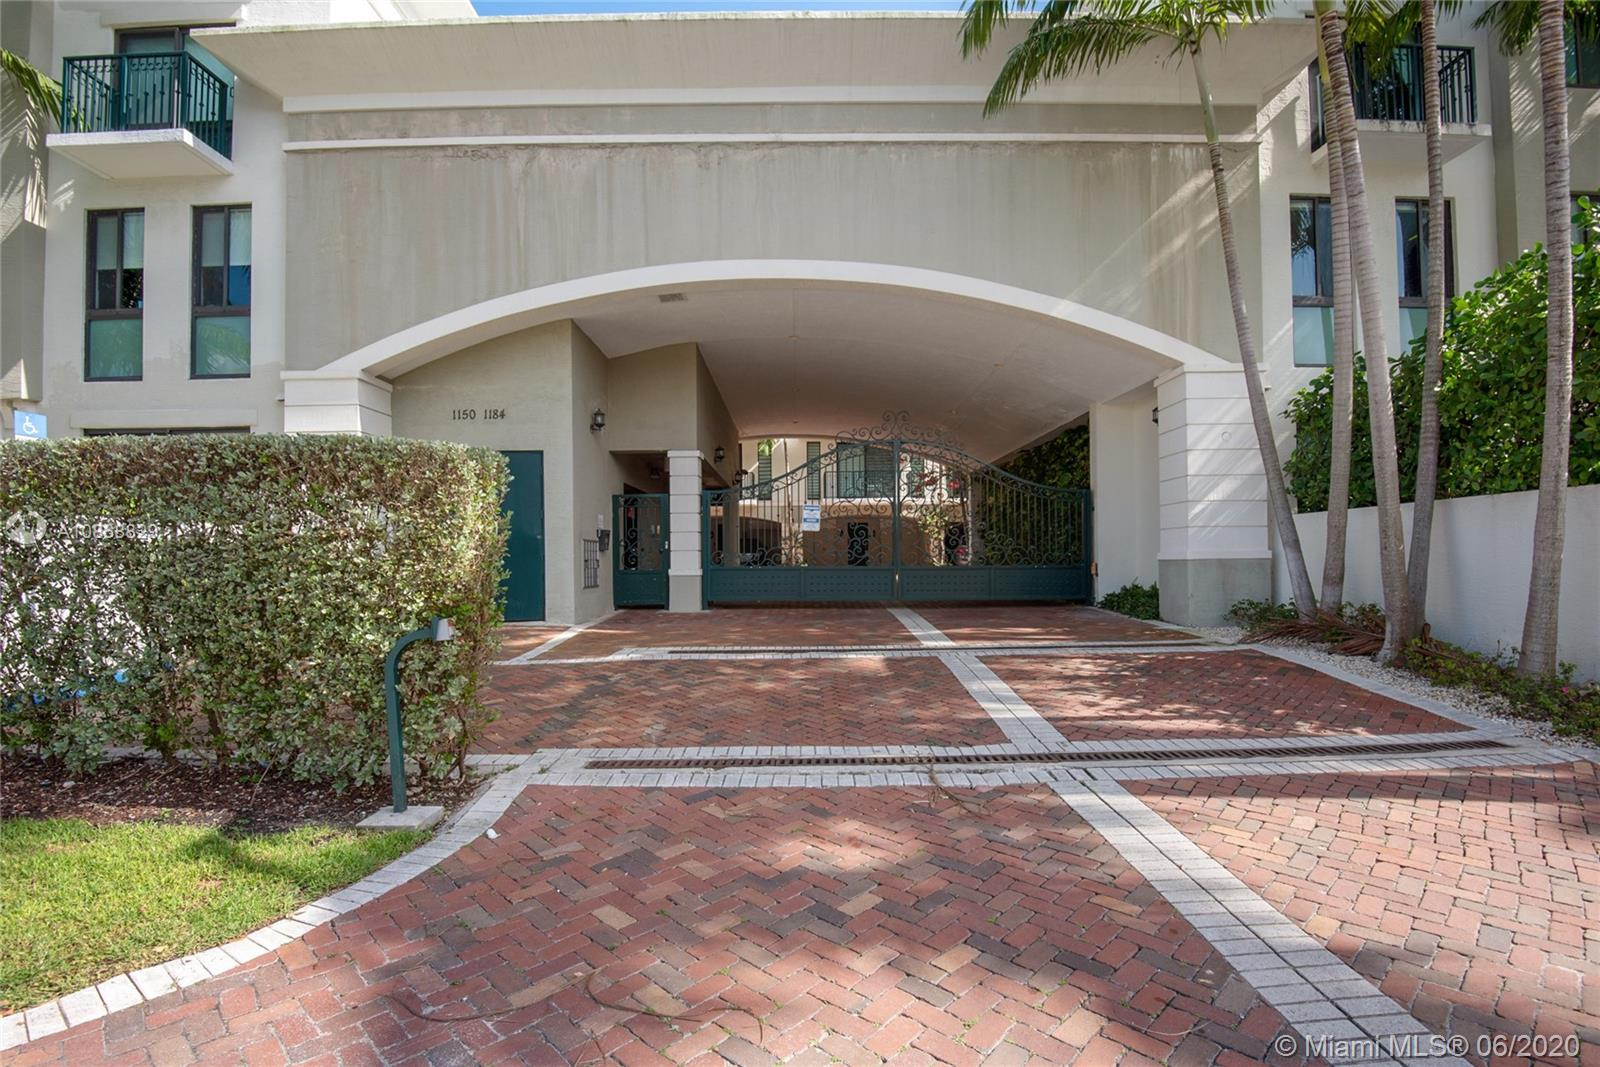 Gated enclave in the heart of Bay Harbor Islands. Totally renovated townhome features 2675 sf with 5bd/4ba & interior elevator. Entry level includes 1bd/1ba & den w French doors leading to outdoor patio & bbq area. The residence features porcelain floors throughou, open kitchen with wood & glass cabinetry, top-of-the-line ss appliances, granite countertops & center island w seating. Gracious open living & dining rooms adjacent to kitchen, & large terrace. 3rd level has 3bd/2ba. 4th level features a huge private master suite w walk-in closet, sitting area/in-home office & large terrace. Renovation of common pool area & fitness center is underway. All this in walking distance to beaches, renowned Bal Harbour shops, restaurants & houses of worship. Opportunity awaits but not for long.